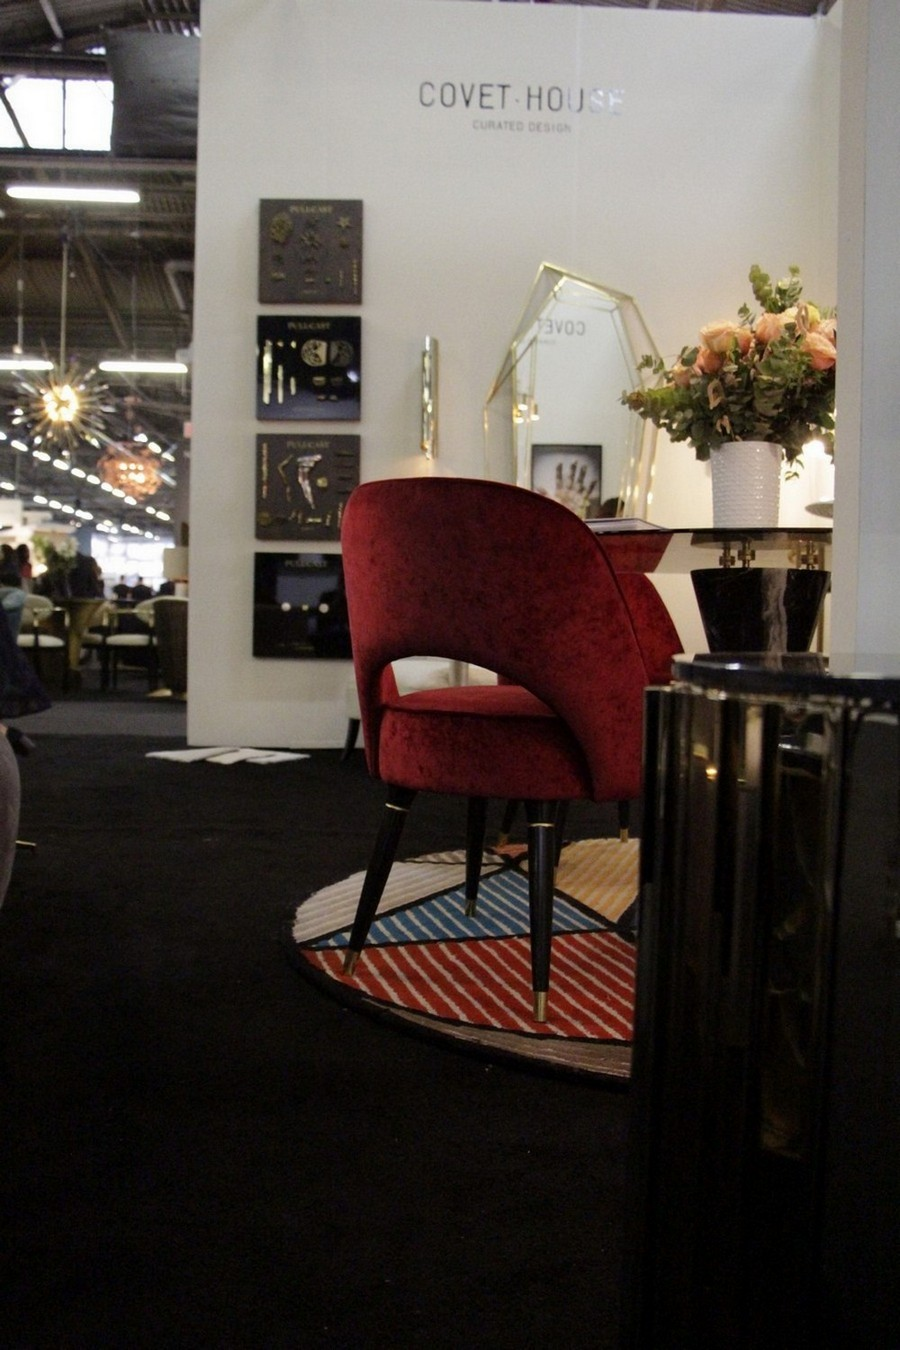 AD Design Show 2019 The Biggest Highlights From Covet House capa